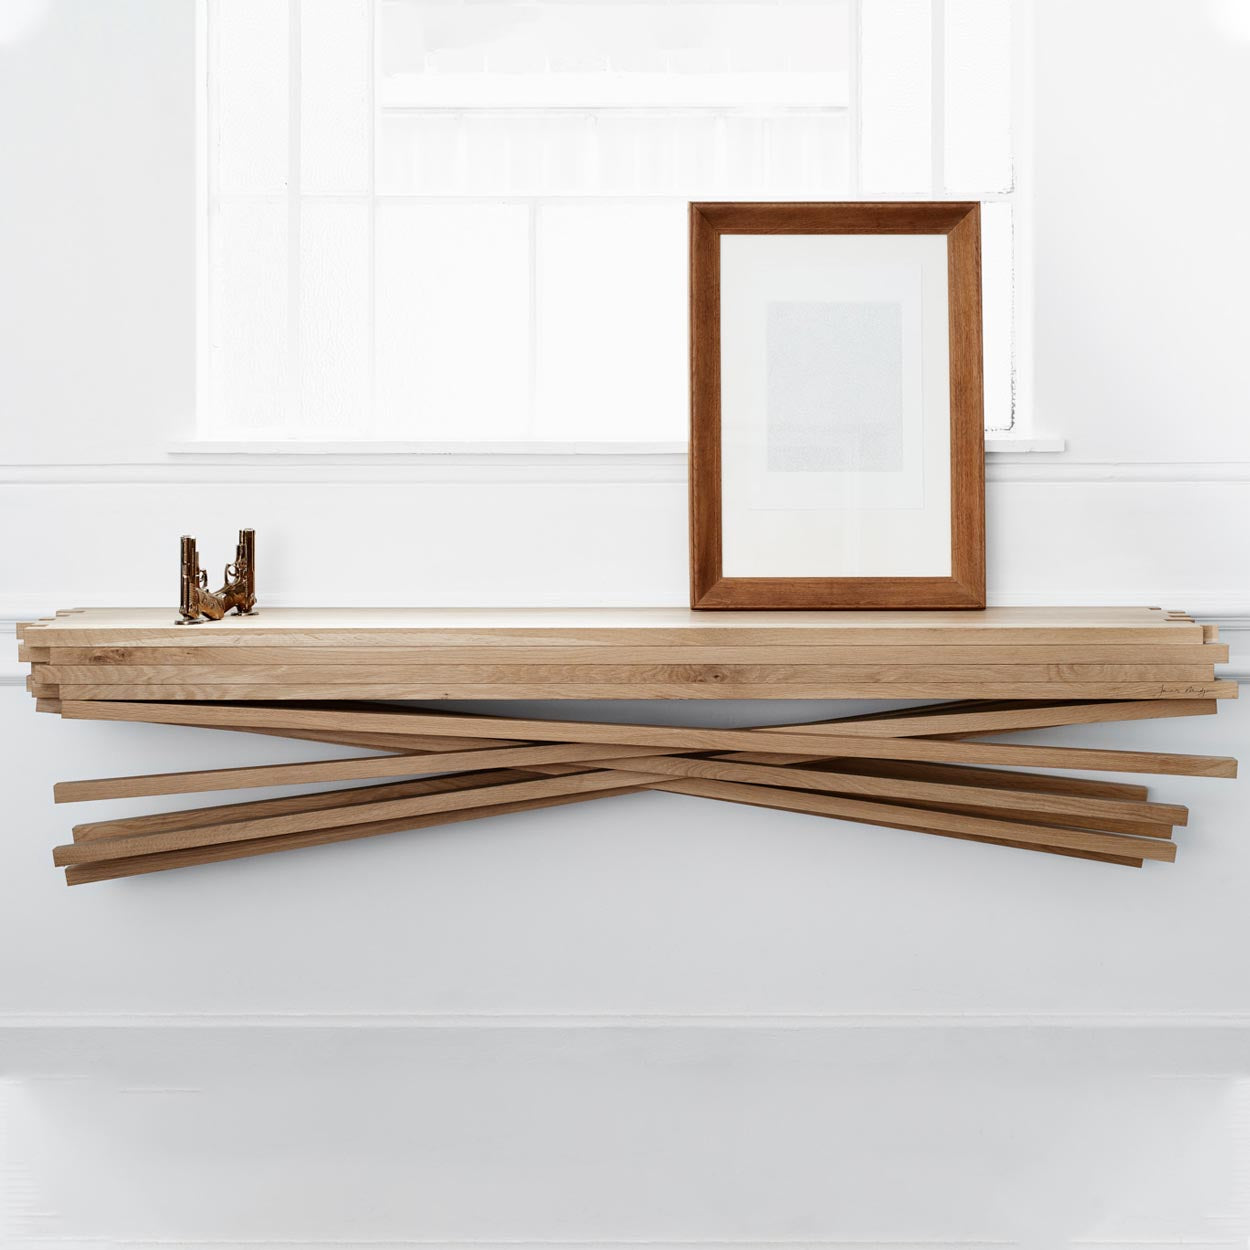 PICK UP STICKS SERVER by James Mudge at SARZA. furniture, James Mudge, pick up sticks, servers